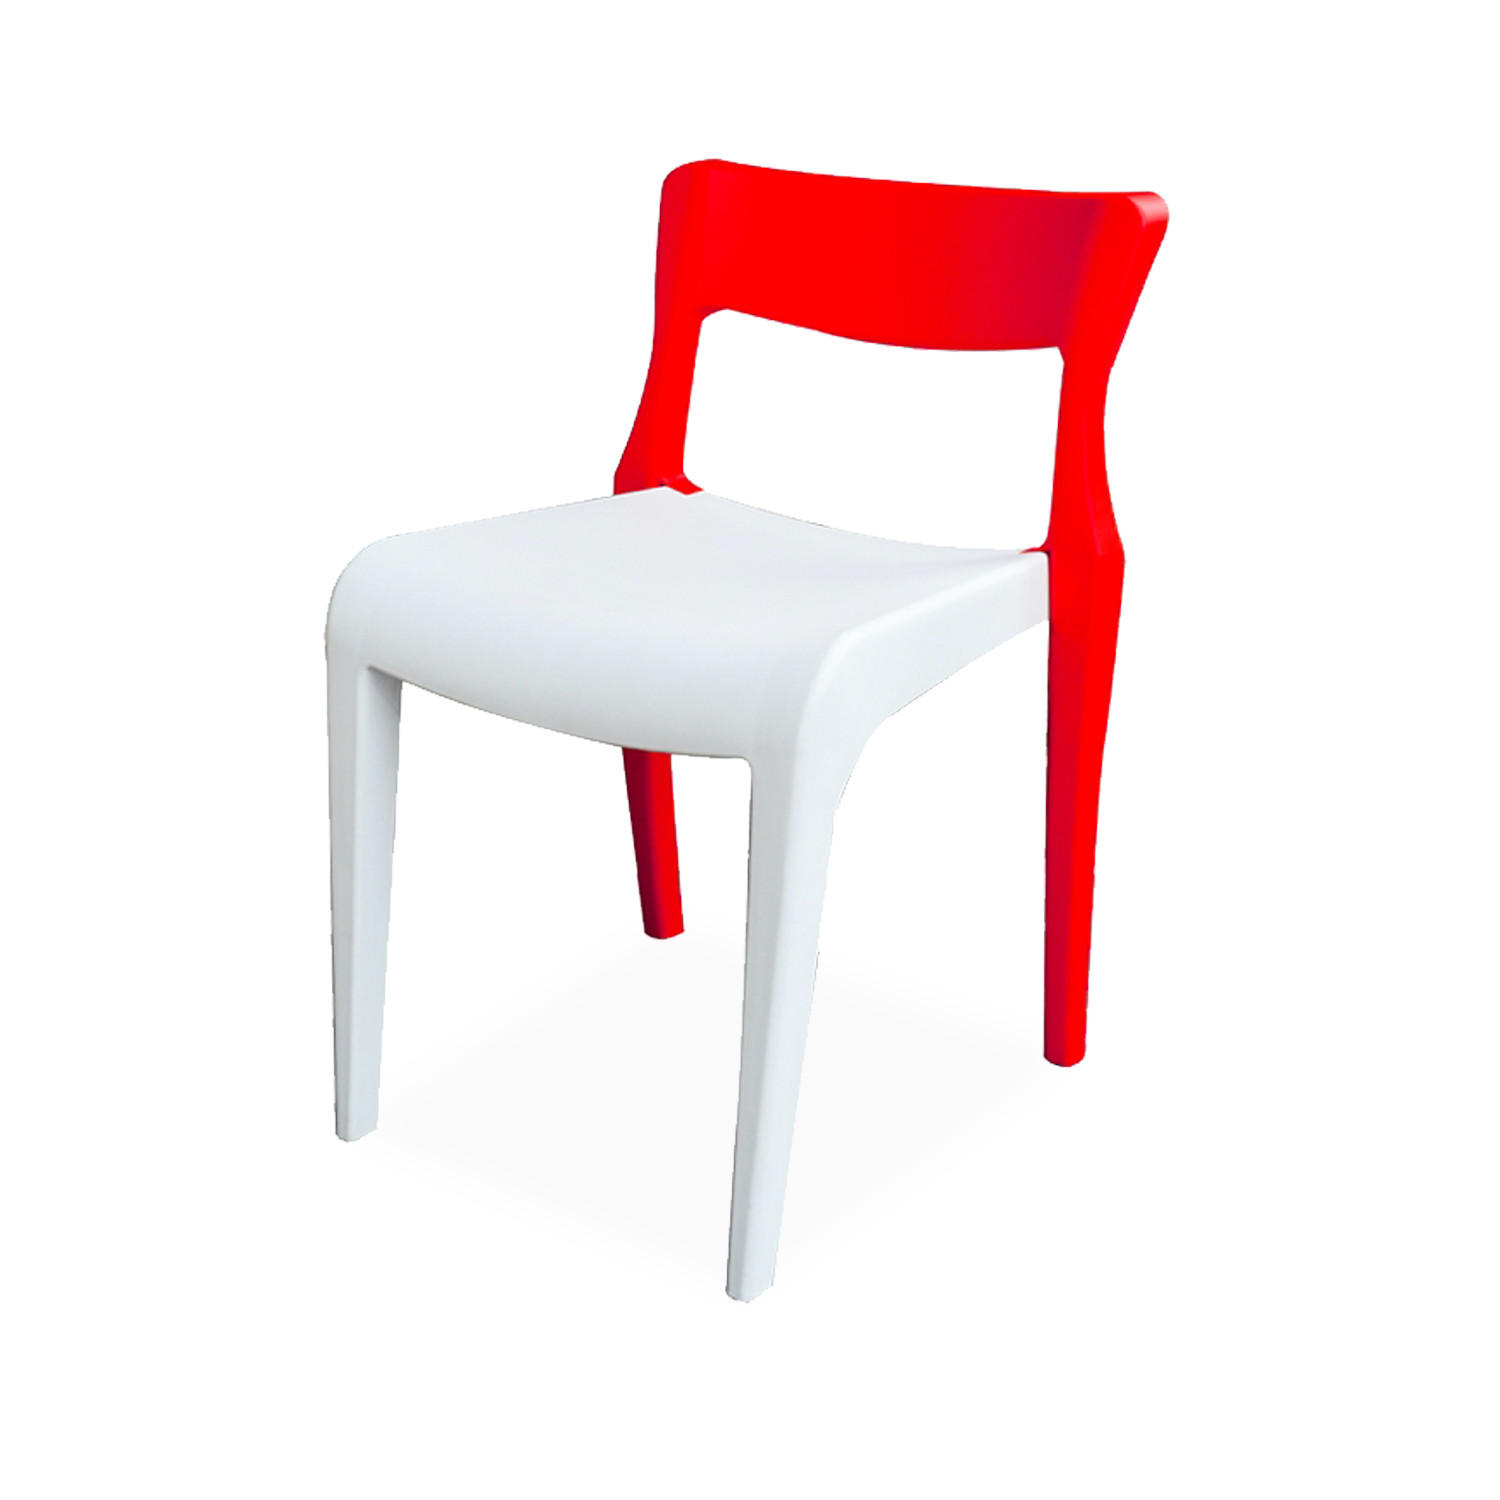 Si pop chair pn9132 furniture home d cor fortytwo for Pop furniture bewertung